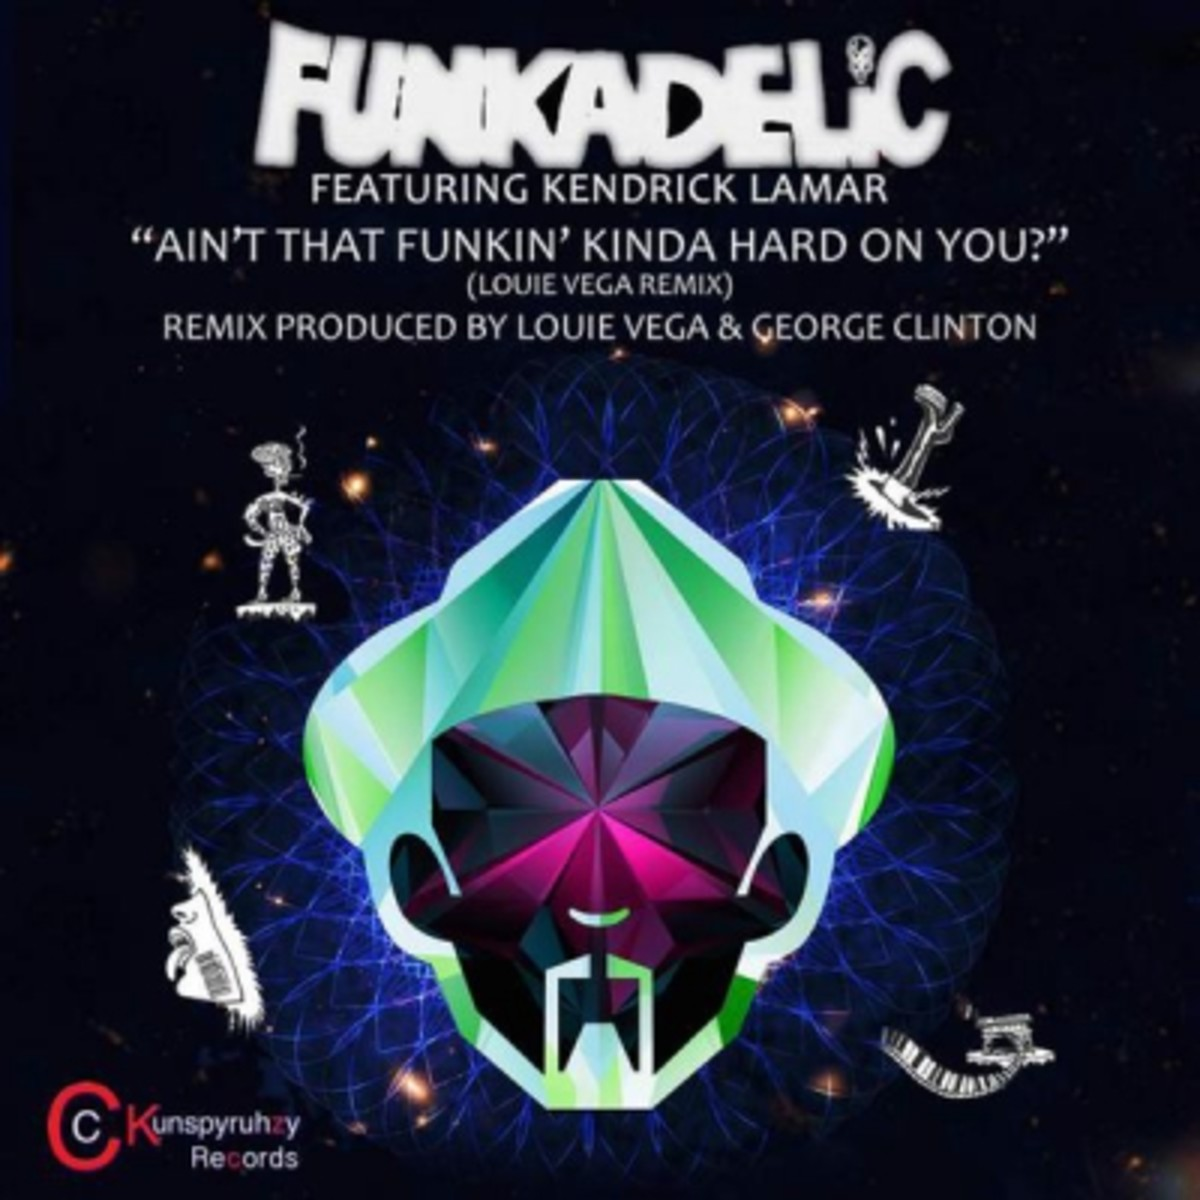 funkadelic-aint-that-funkin-kinda-hard-on-you-remix.jpg